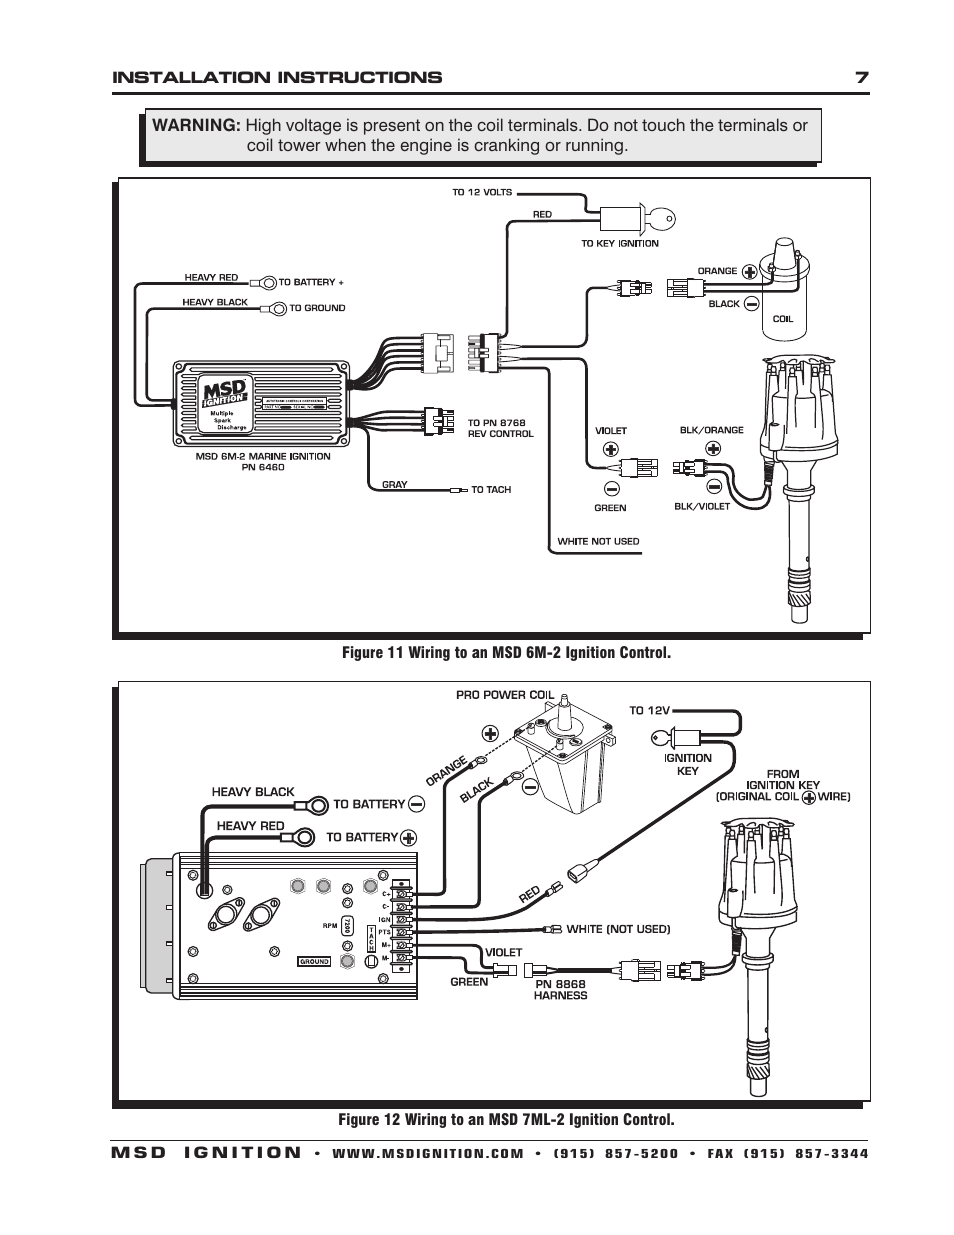 msd 8560 chevy v8 marine certified distributor installation page7?resize\=665%2C861 8560 dist msd 6al wiring diagram,msd \u2022 indy500 co  at crackthecode.co